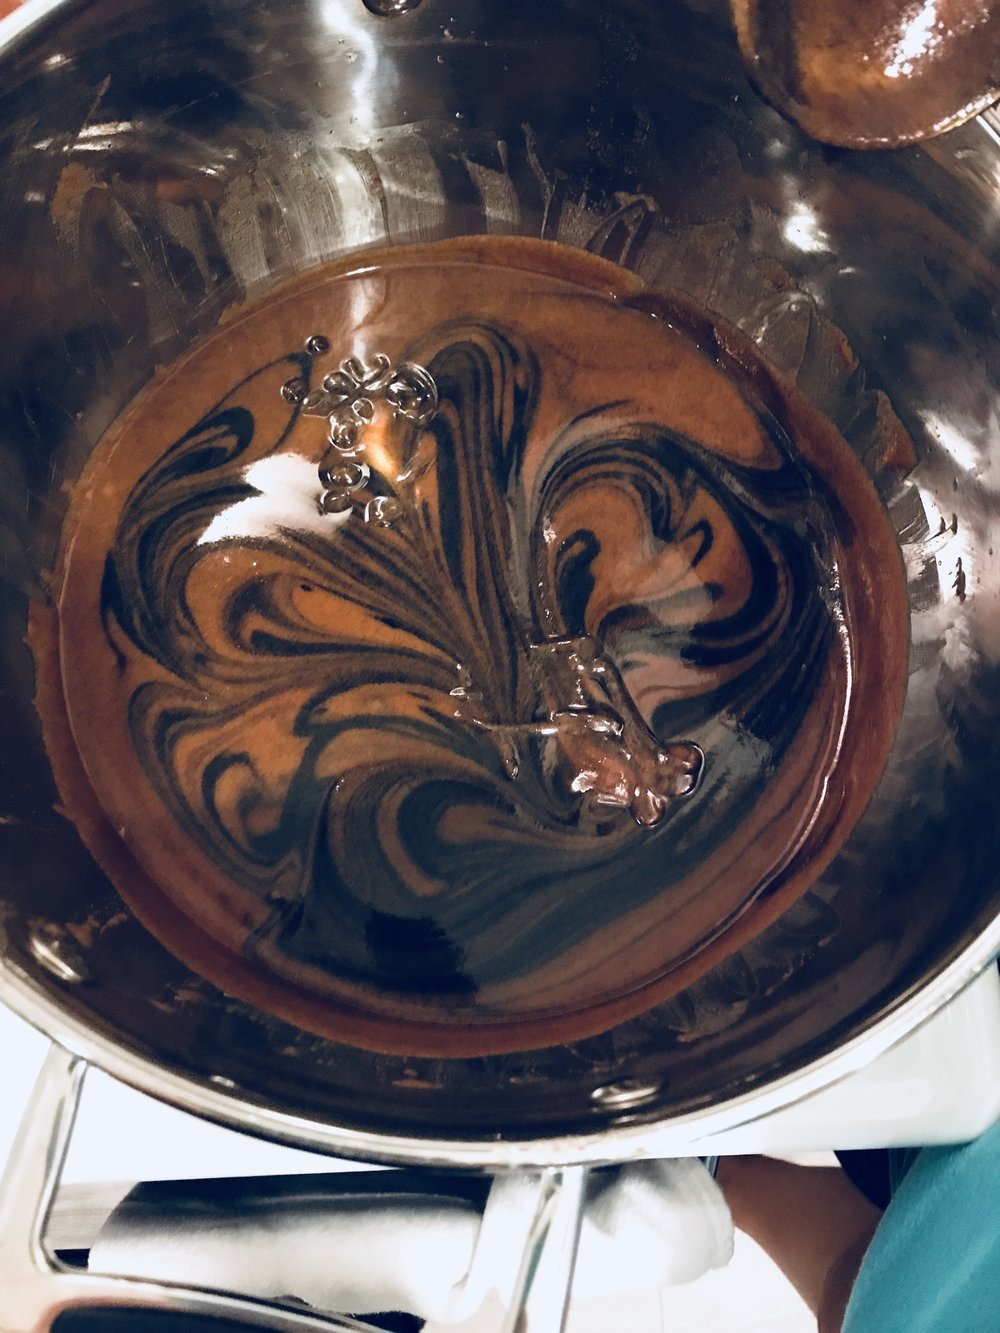 Blended in turmeric, then swirled in charcoal before pouring